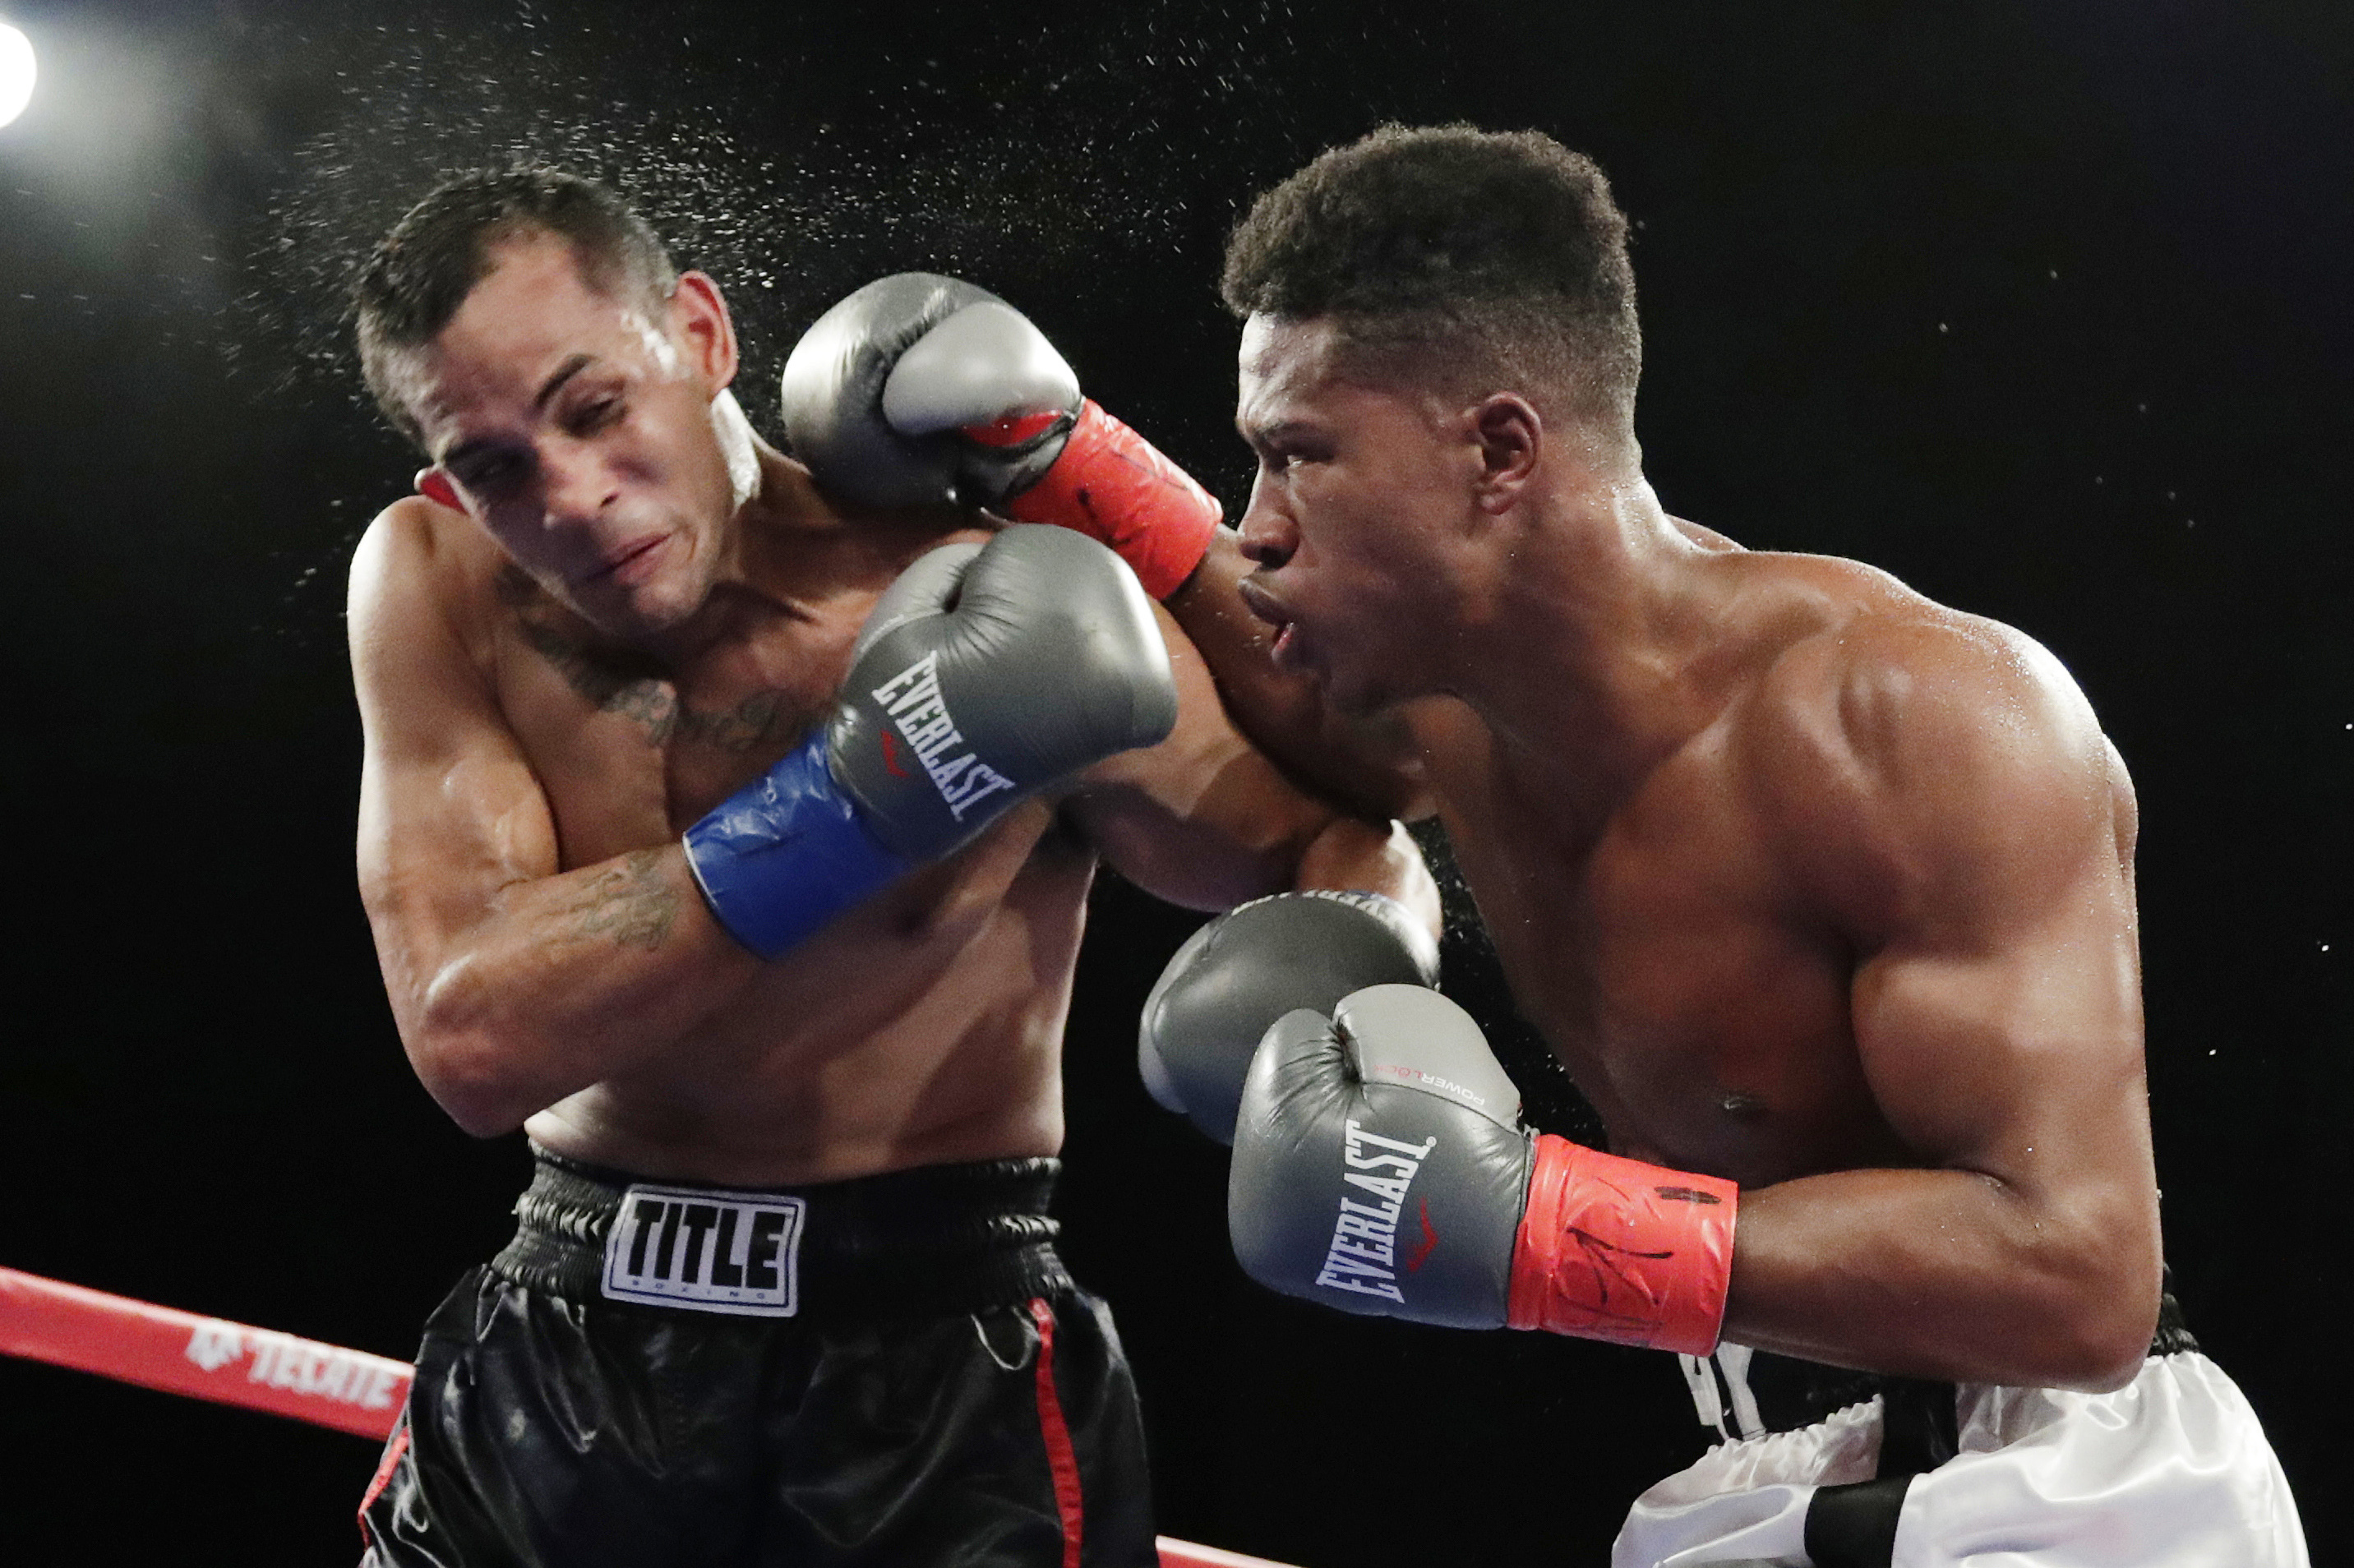 Patrick Day punches Elvin Ayala during the fifth round of a WBC super welterweight boxing bout in New York.